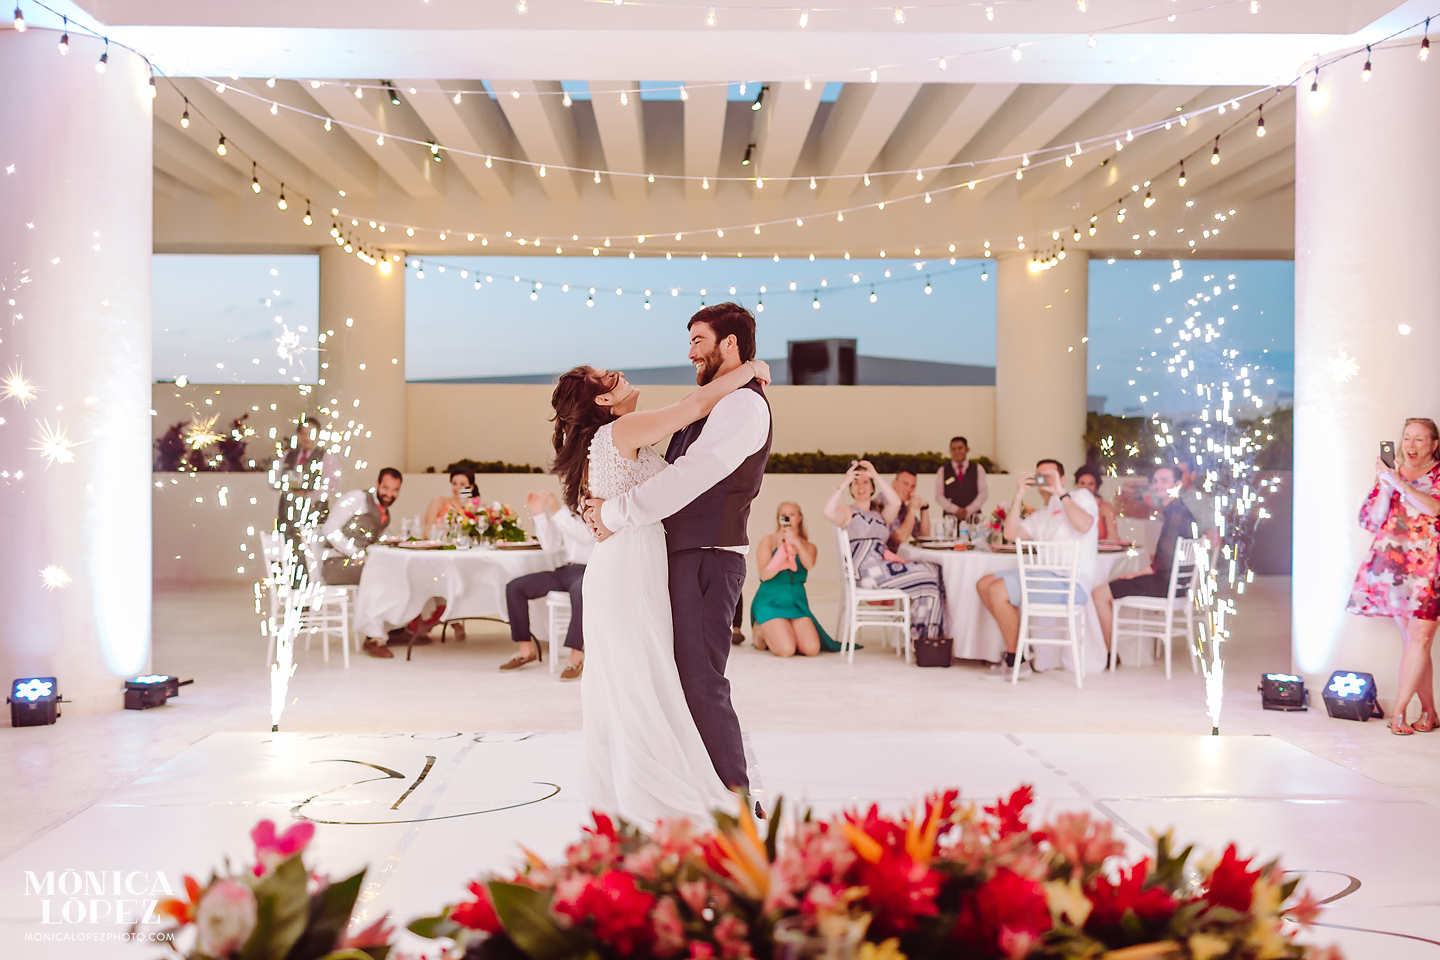 Hyatt Ziva Wedding by Monica Lopez Photography